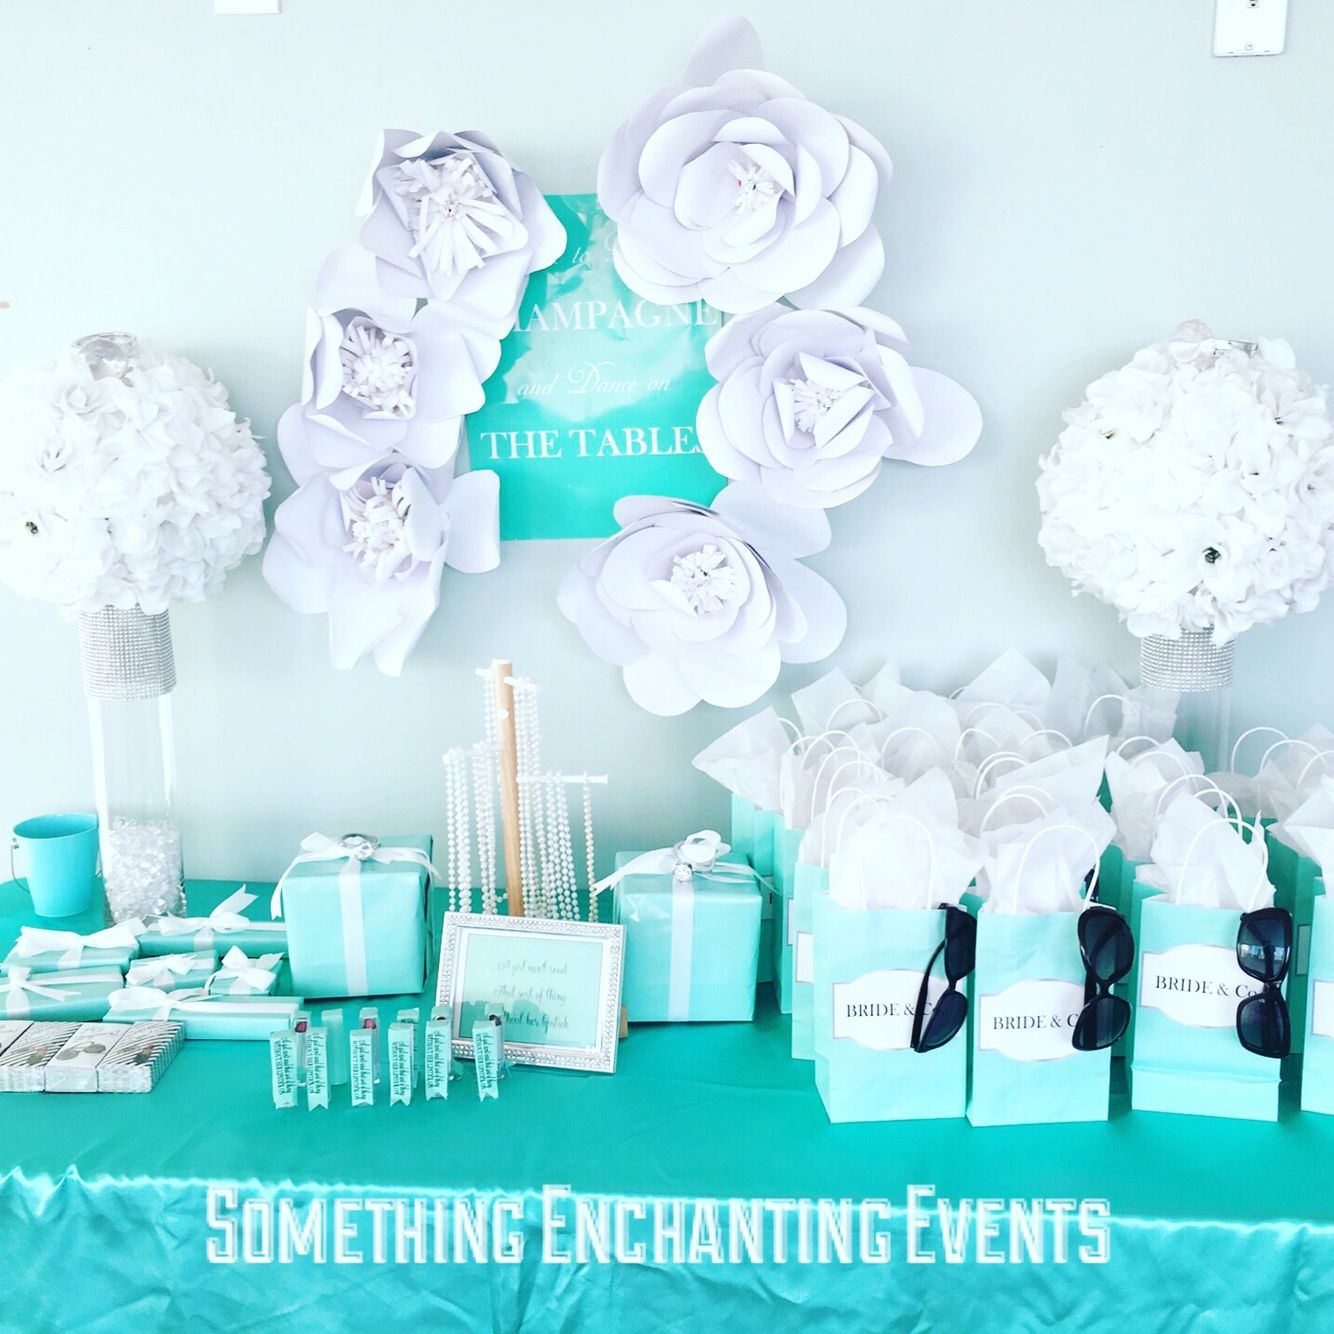 Paper Flowers Sunglasses Tiffany Wrapped Gifts Lipsticks And